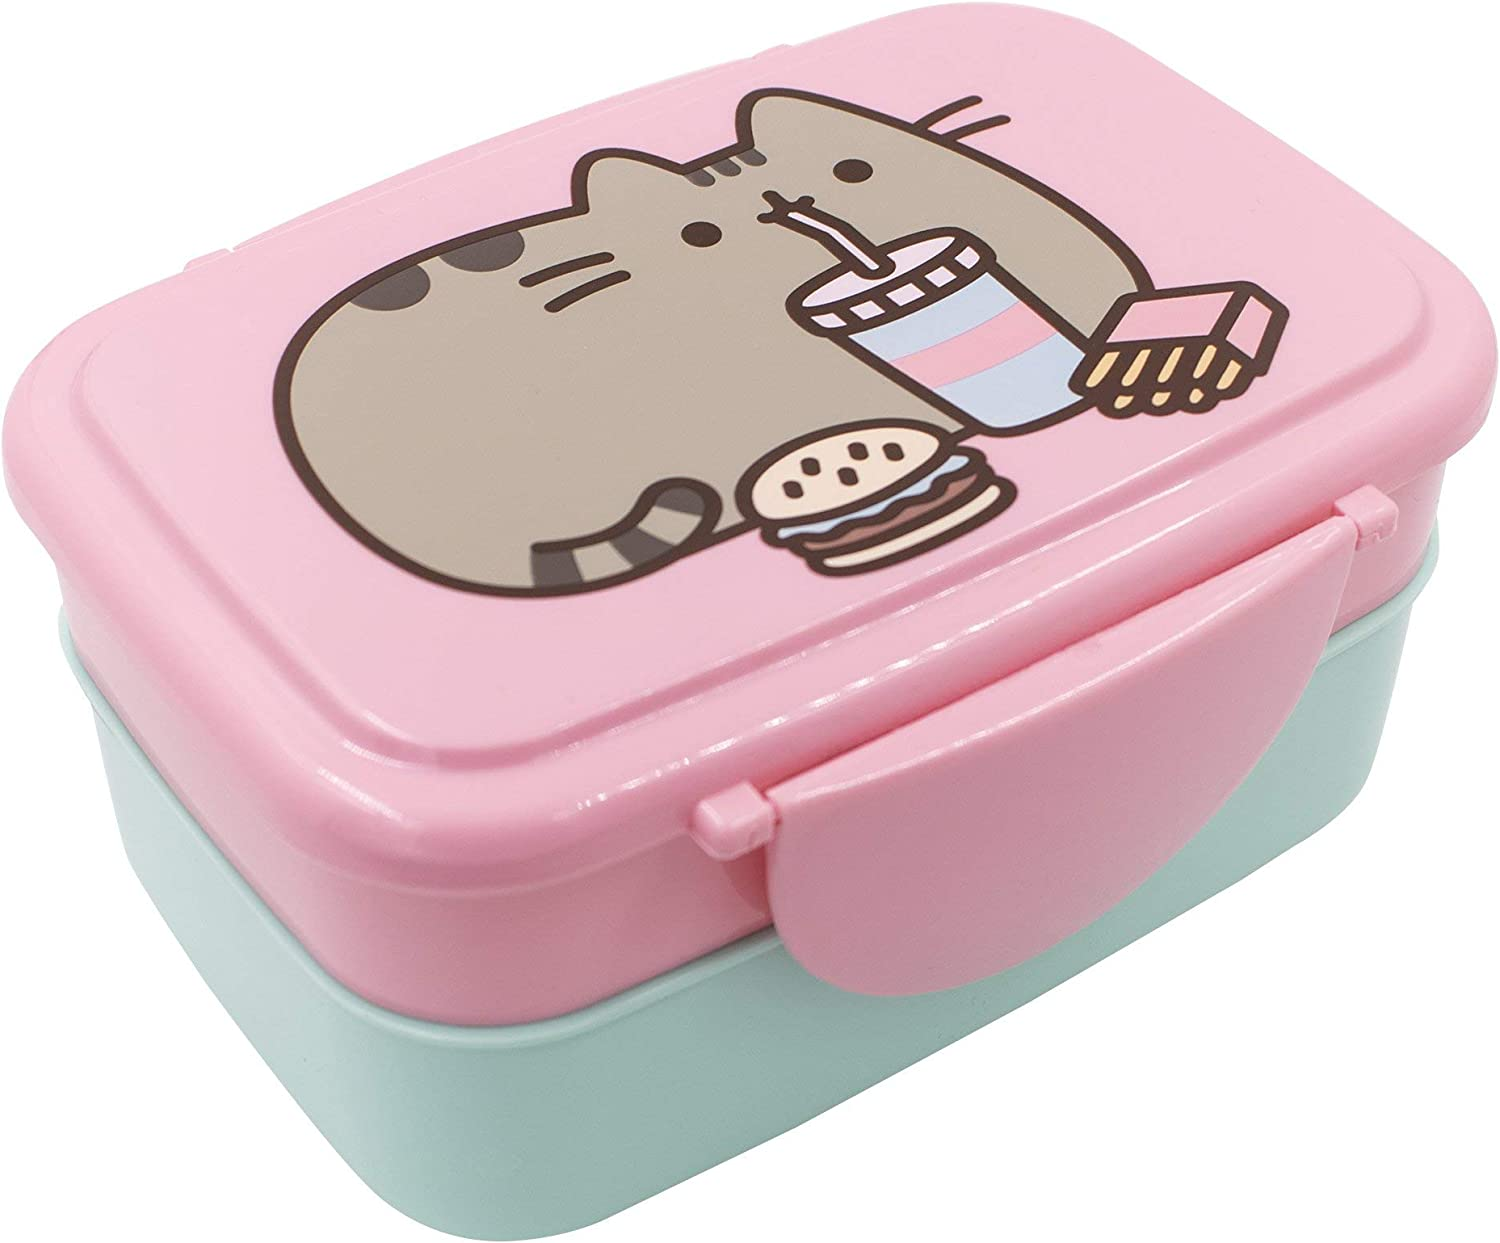 Pusheen The Cat Fast Food Bento Lunch Box